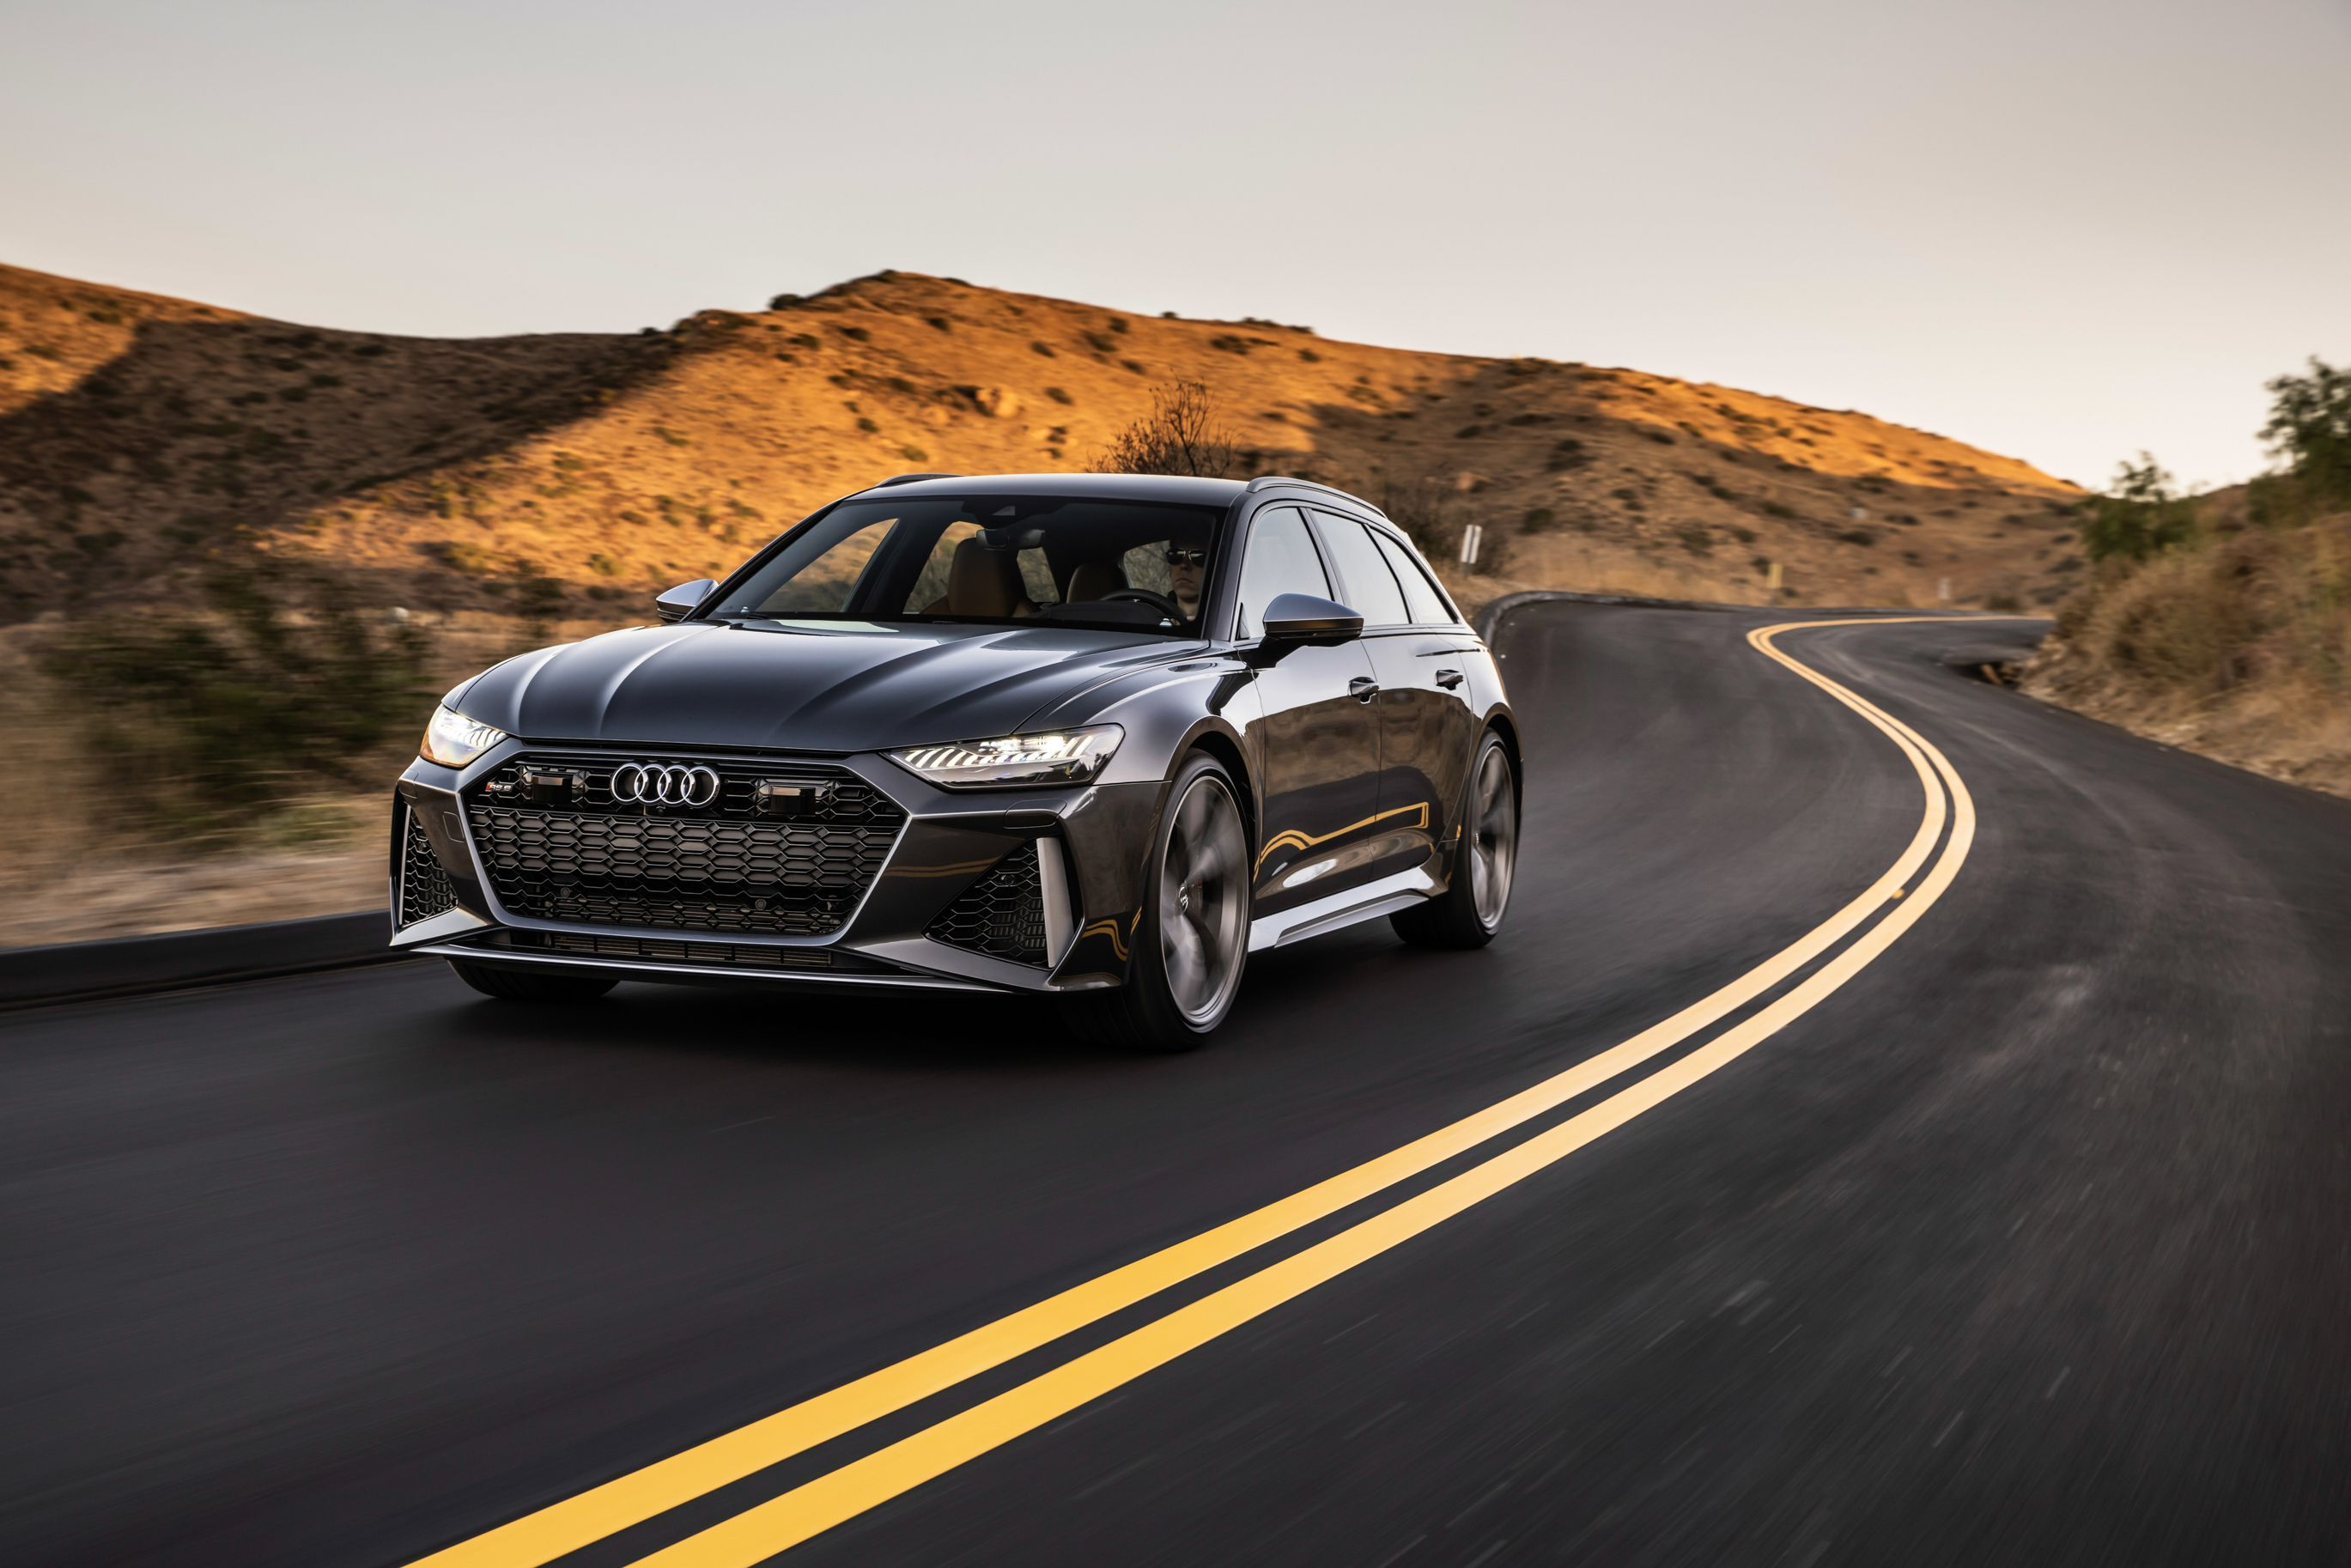 Video Check Out The History Of The Audi V8 In 2020 Audi Rs6 Audi Rs6 Wagon Audi